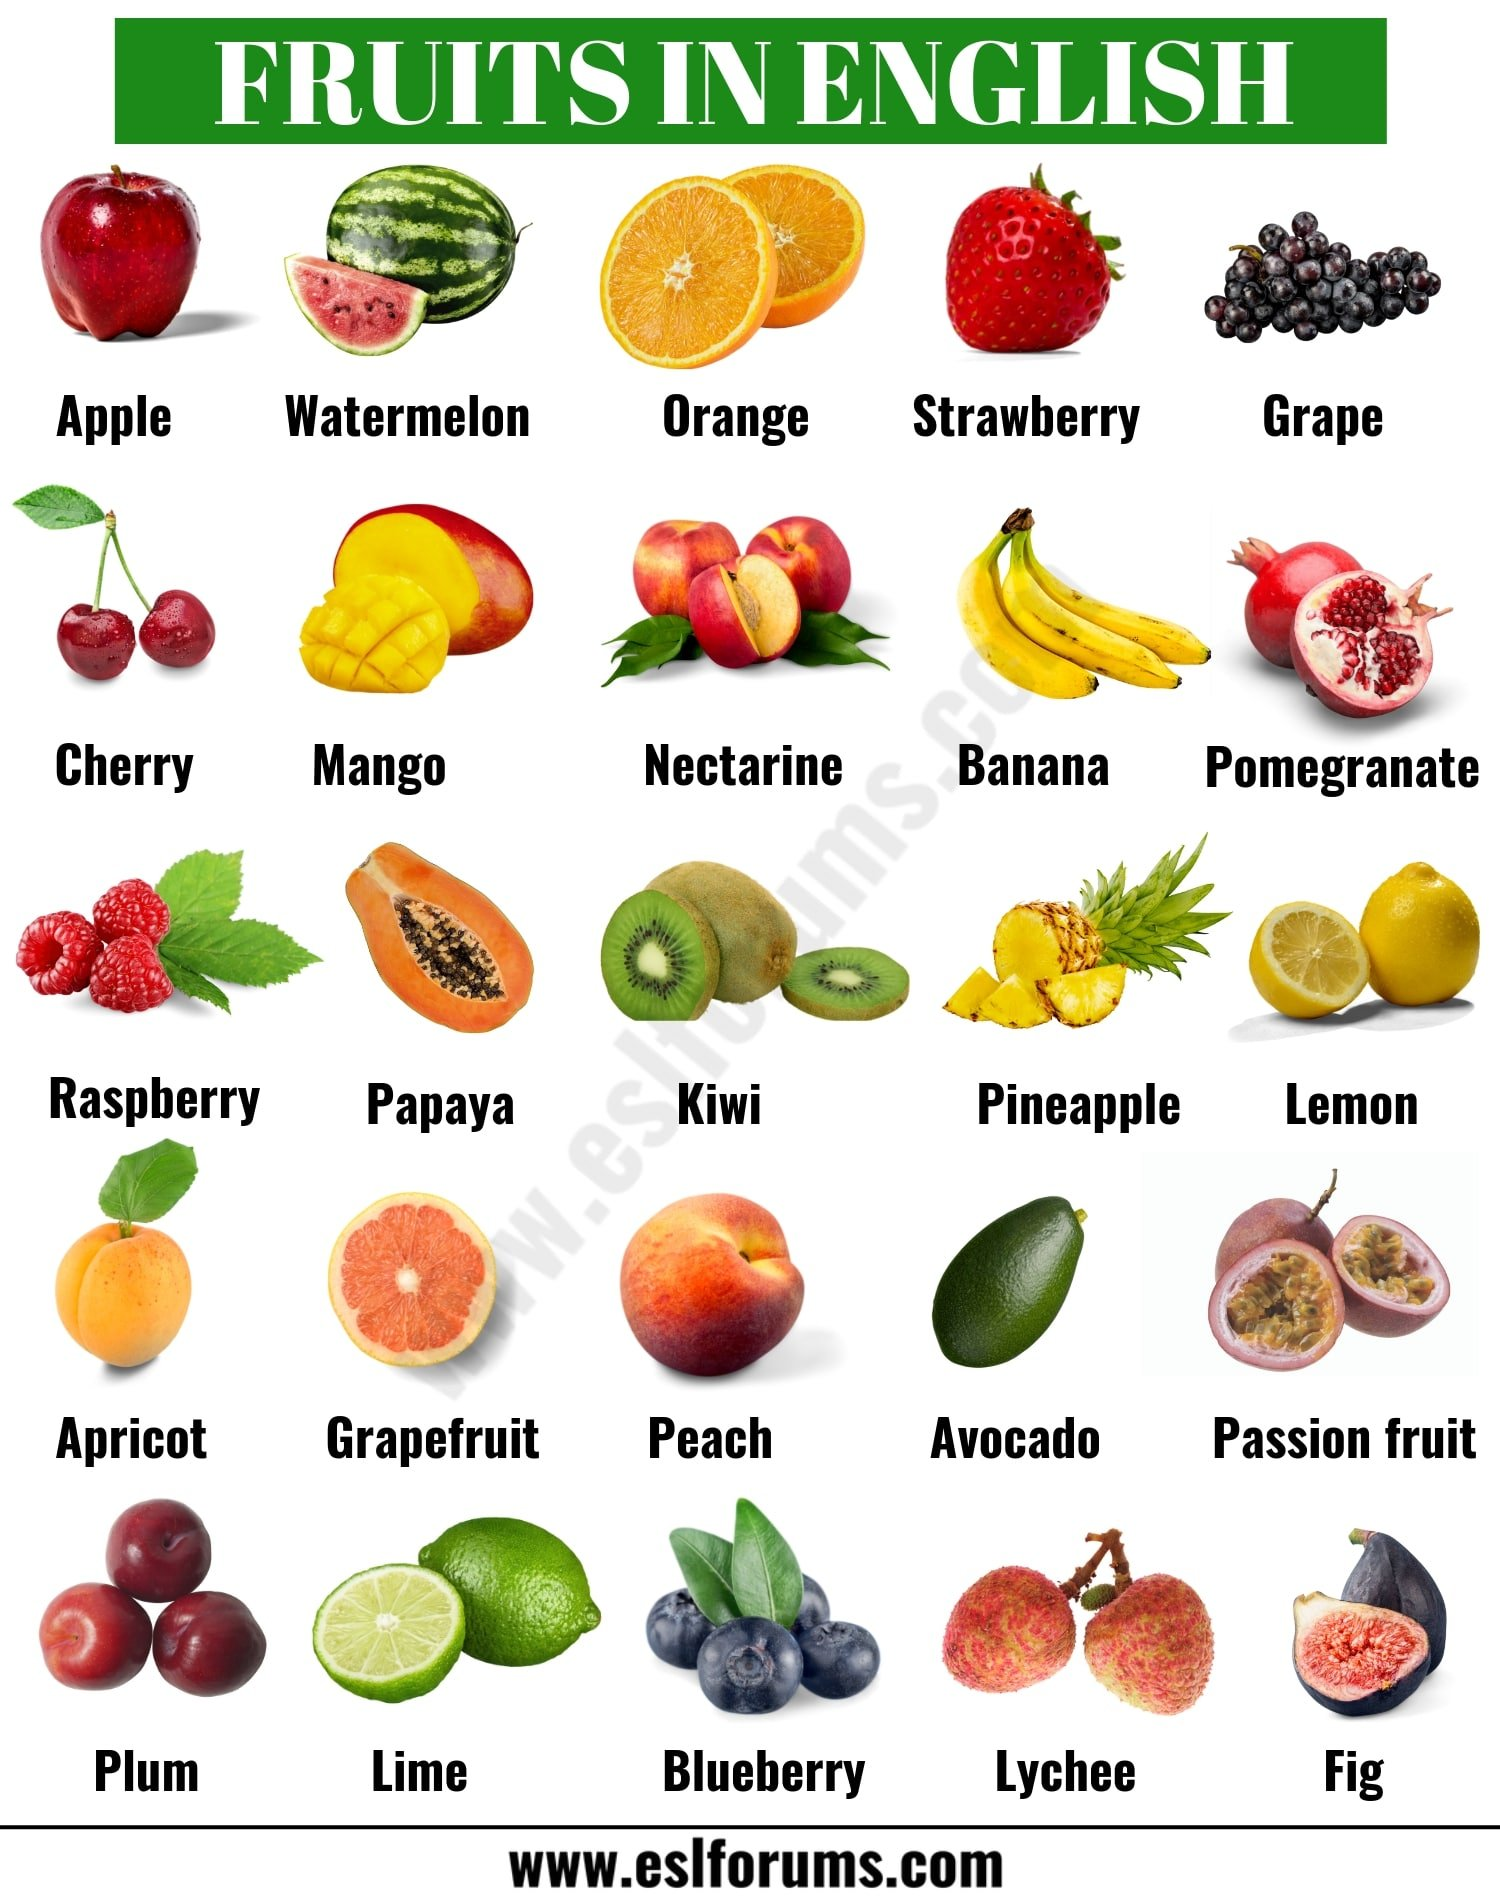 List of Fruits: Learn Common Names of Fruits in English